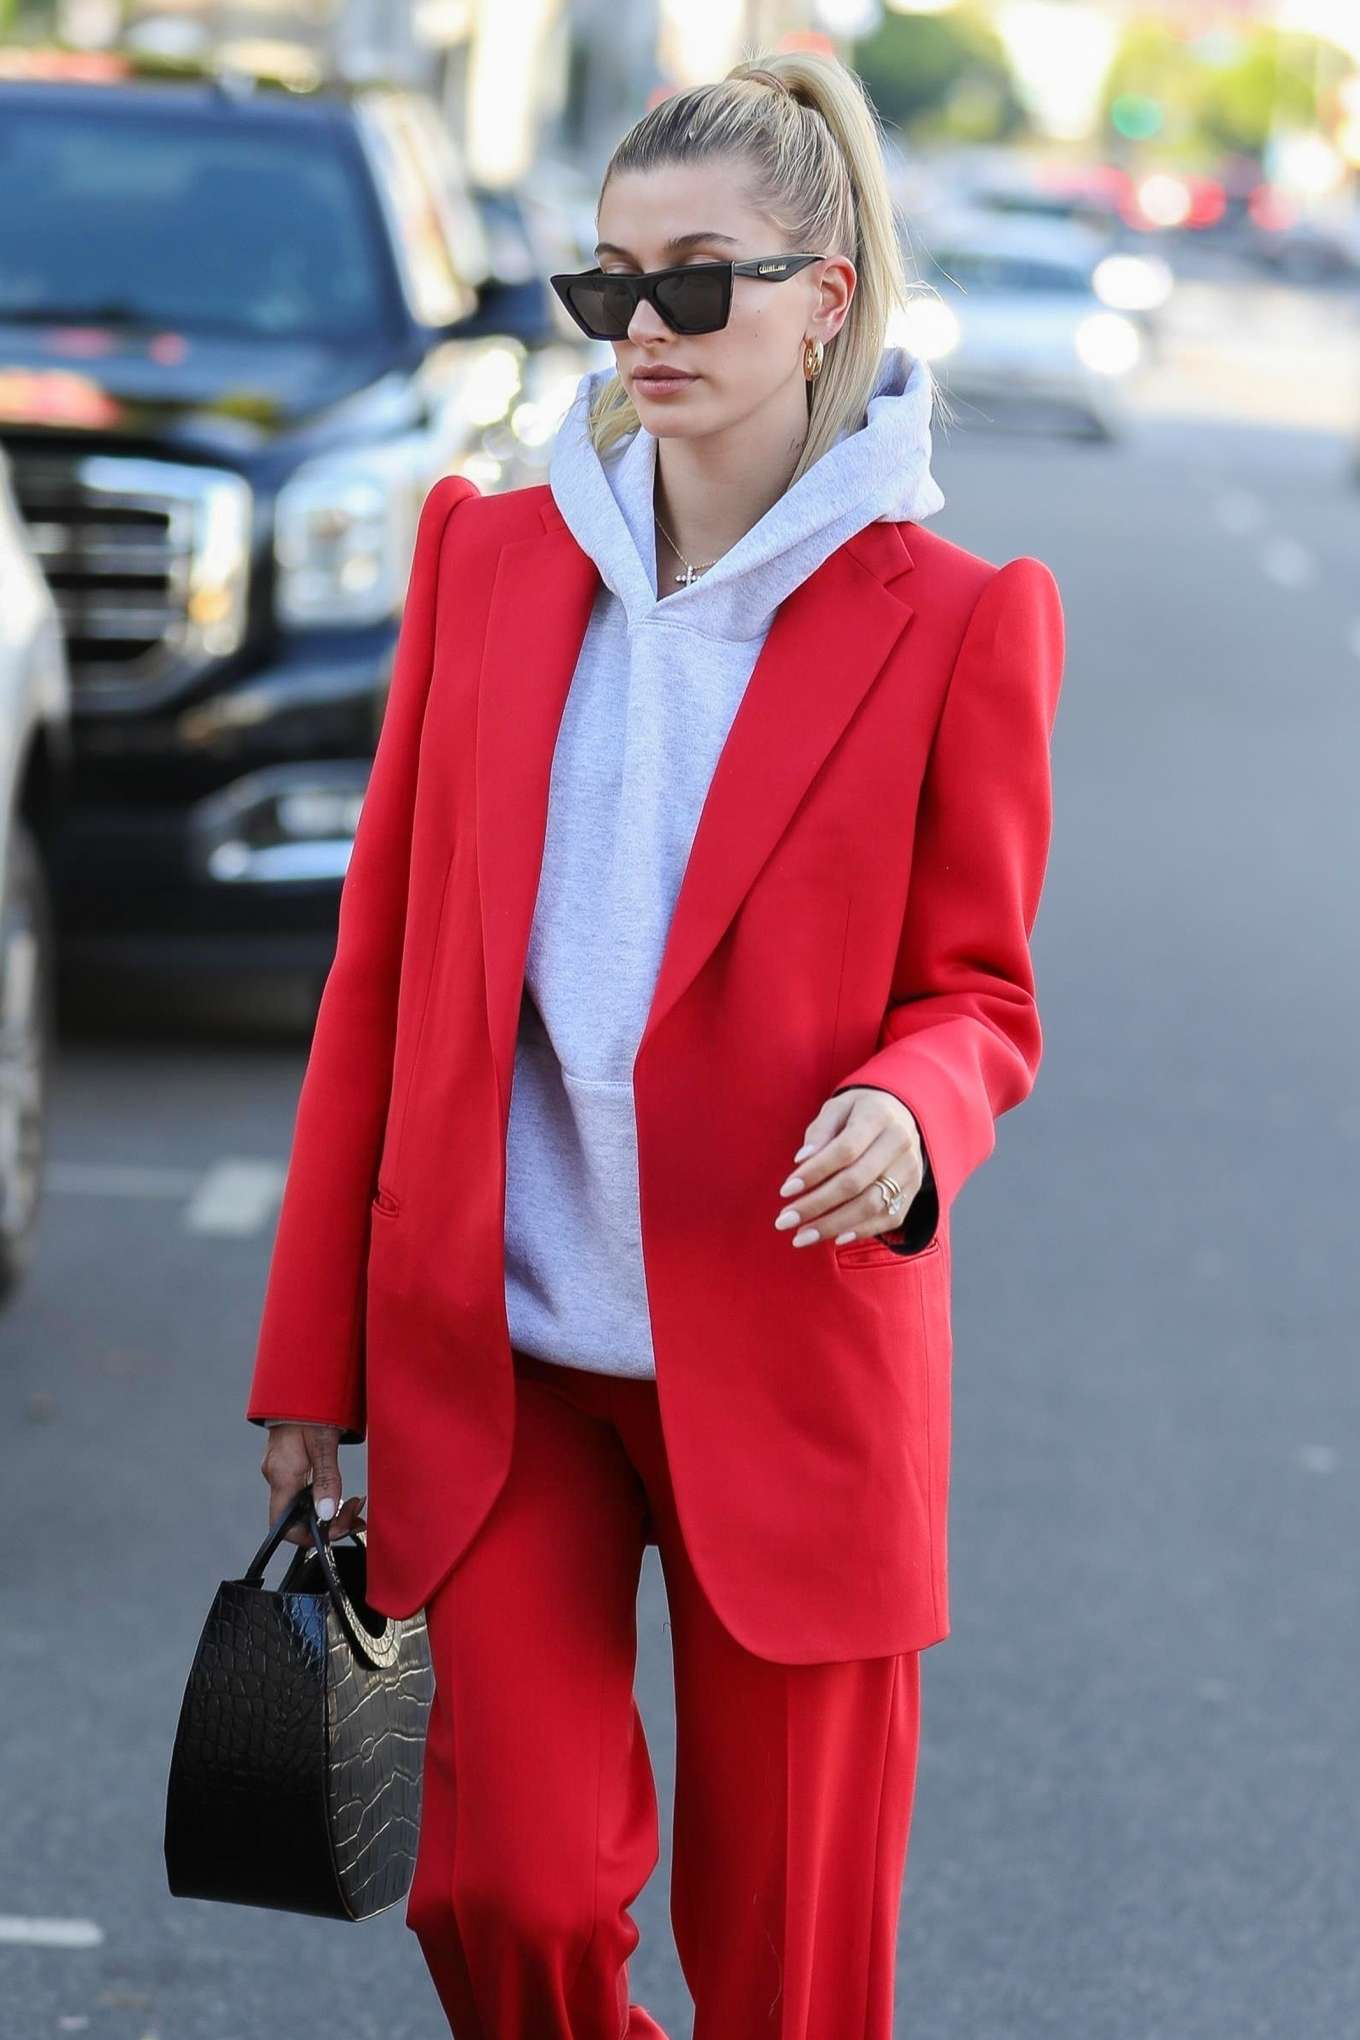 Hailey Bieber 2019 : Hailey Bieber in Red Suit – Out in Beverly Hills-04